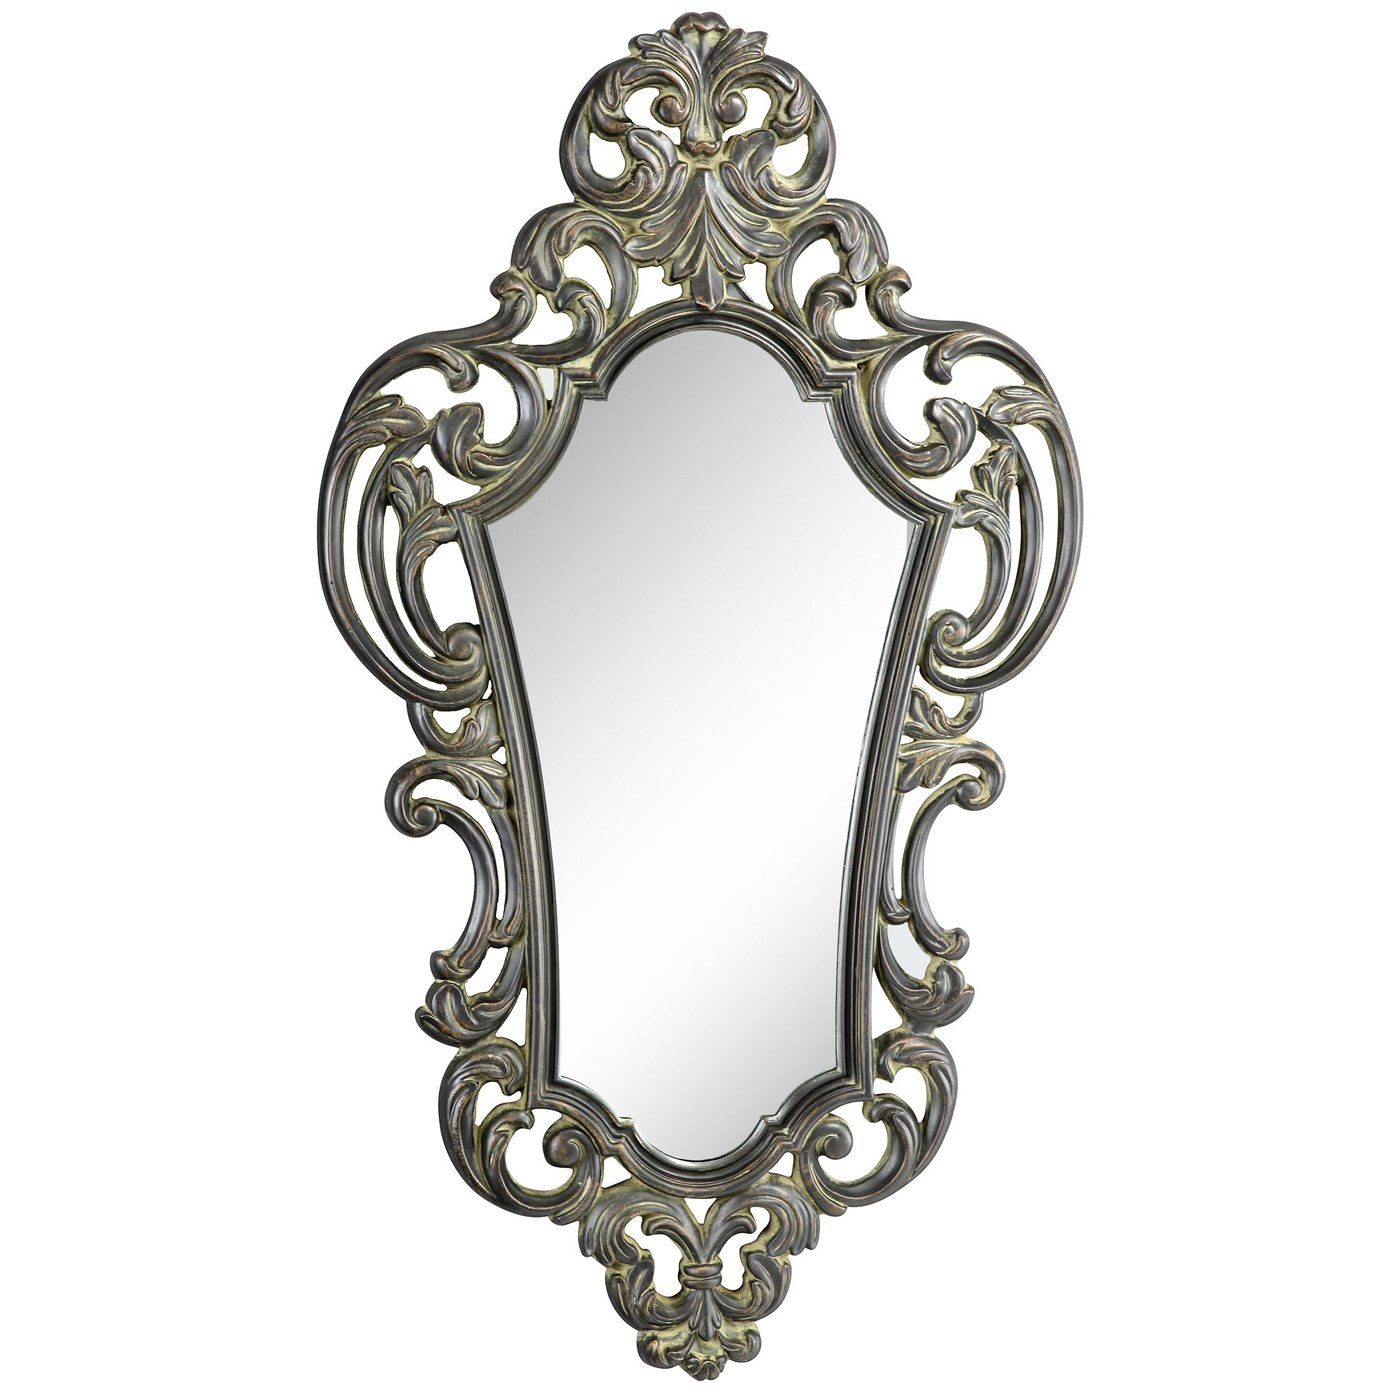 Interior Decoration Bedroom Accessories Ornate Mirrors Pertaining To Ornate Mirrors (View 7 of 15)